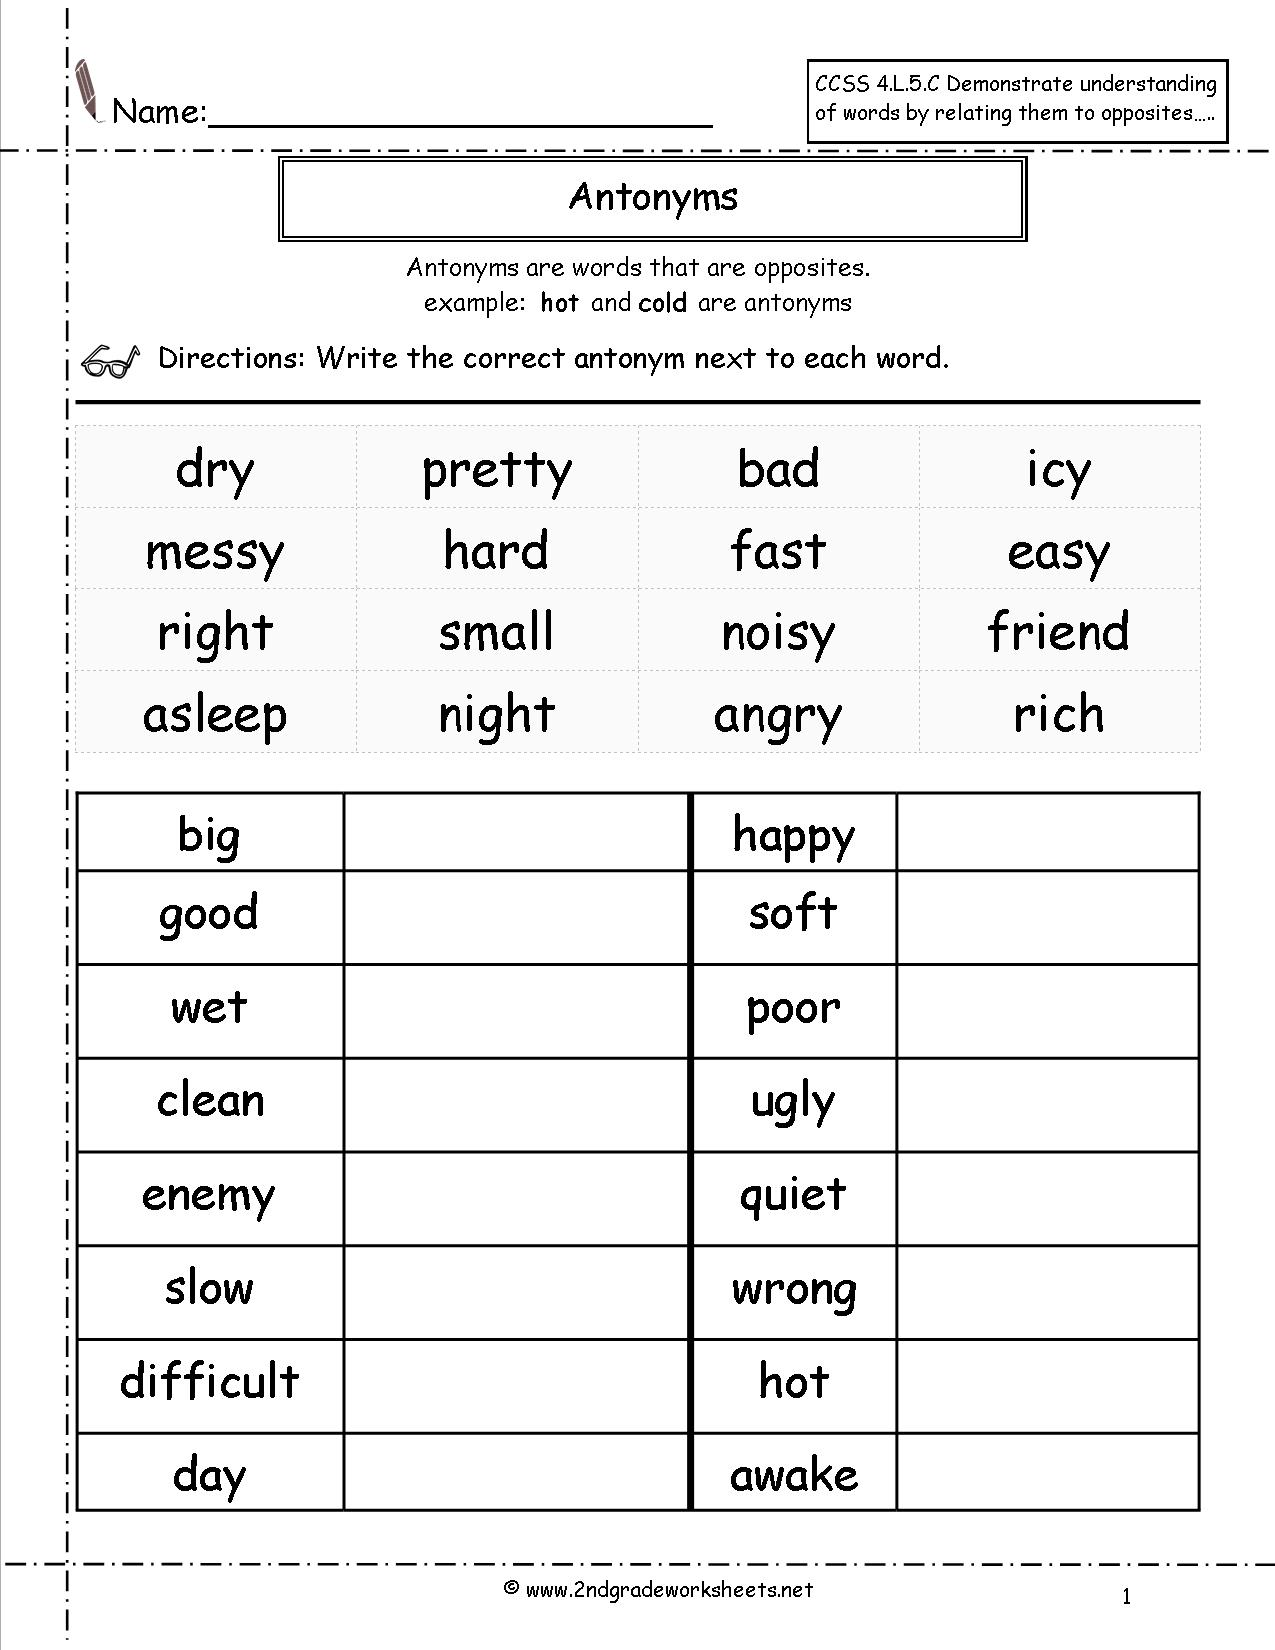 17 Best Images Of Nouns Verbs Adjectives Worksheets 1st Grade